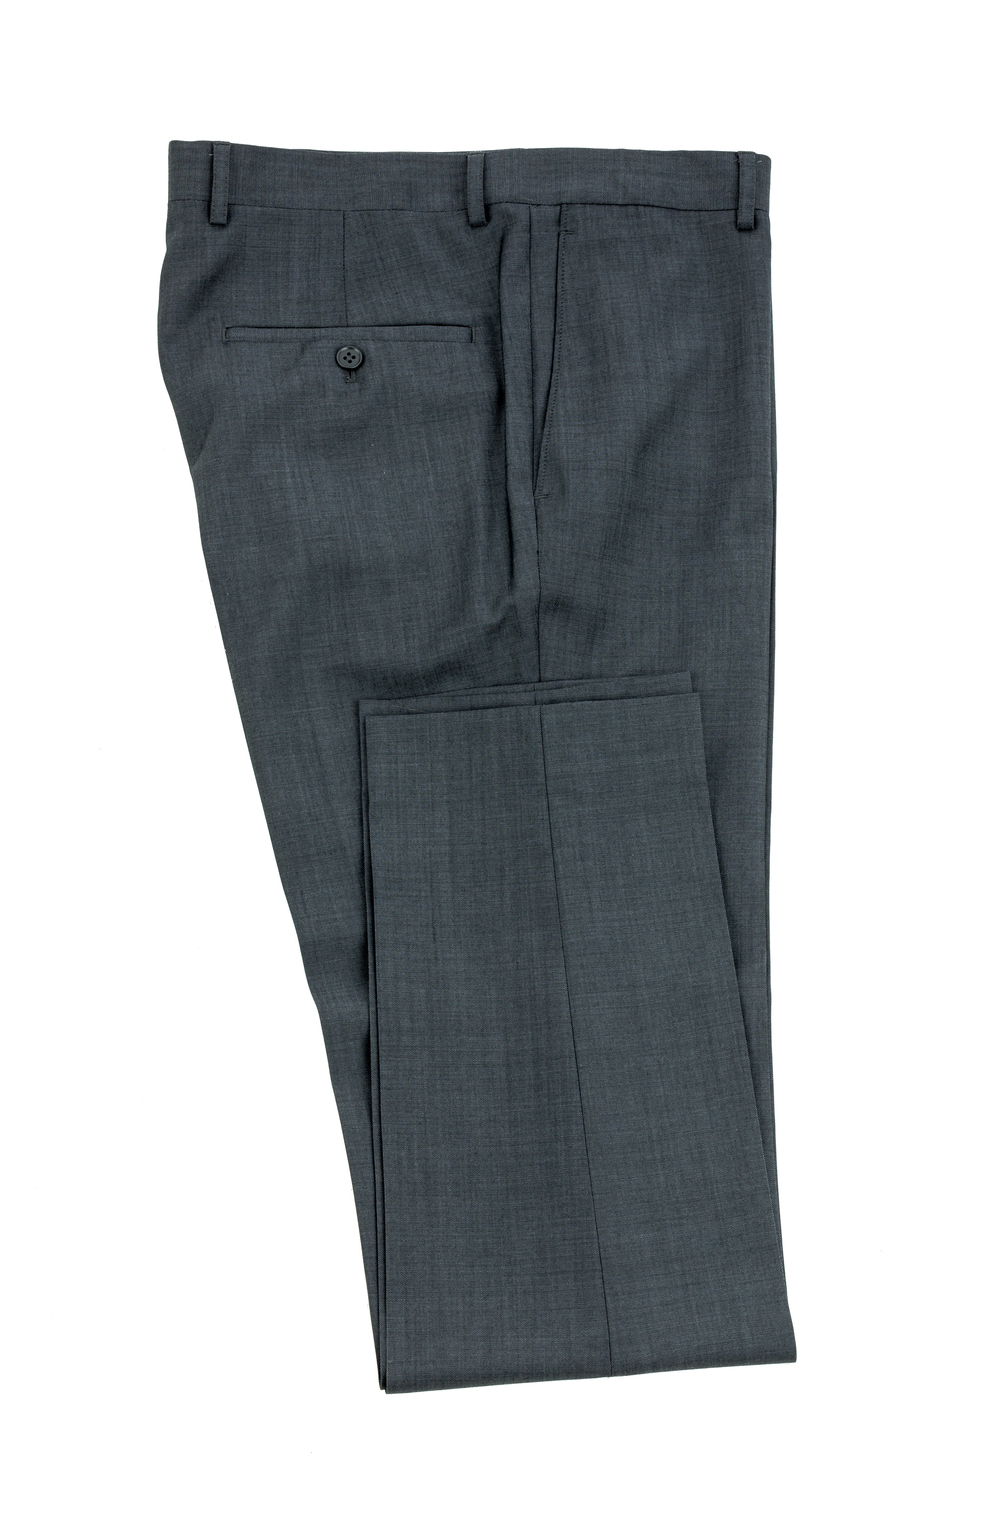 Kenneth Blake Grey Trouser